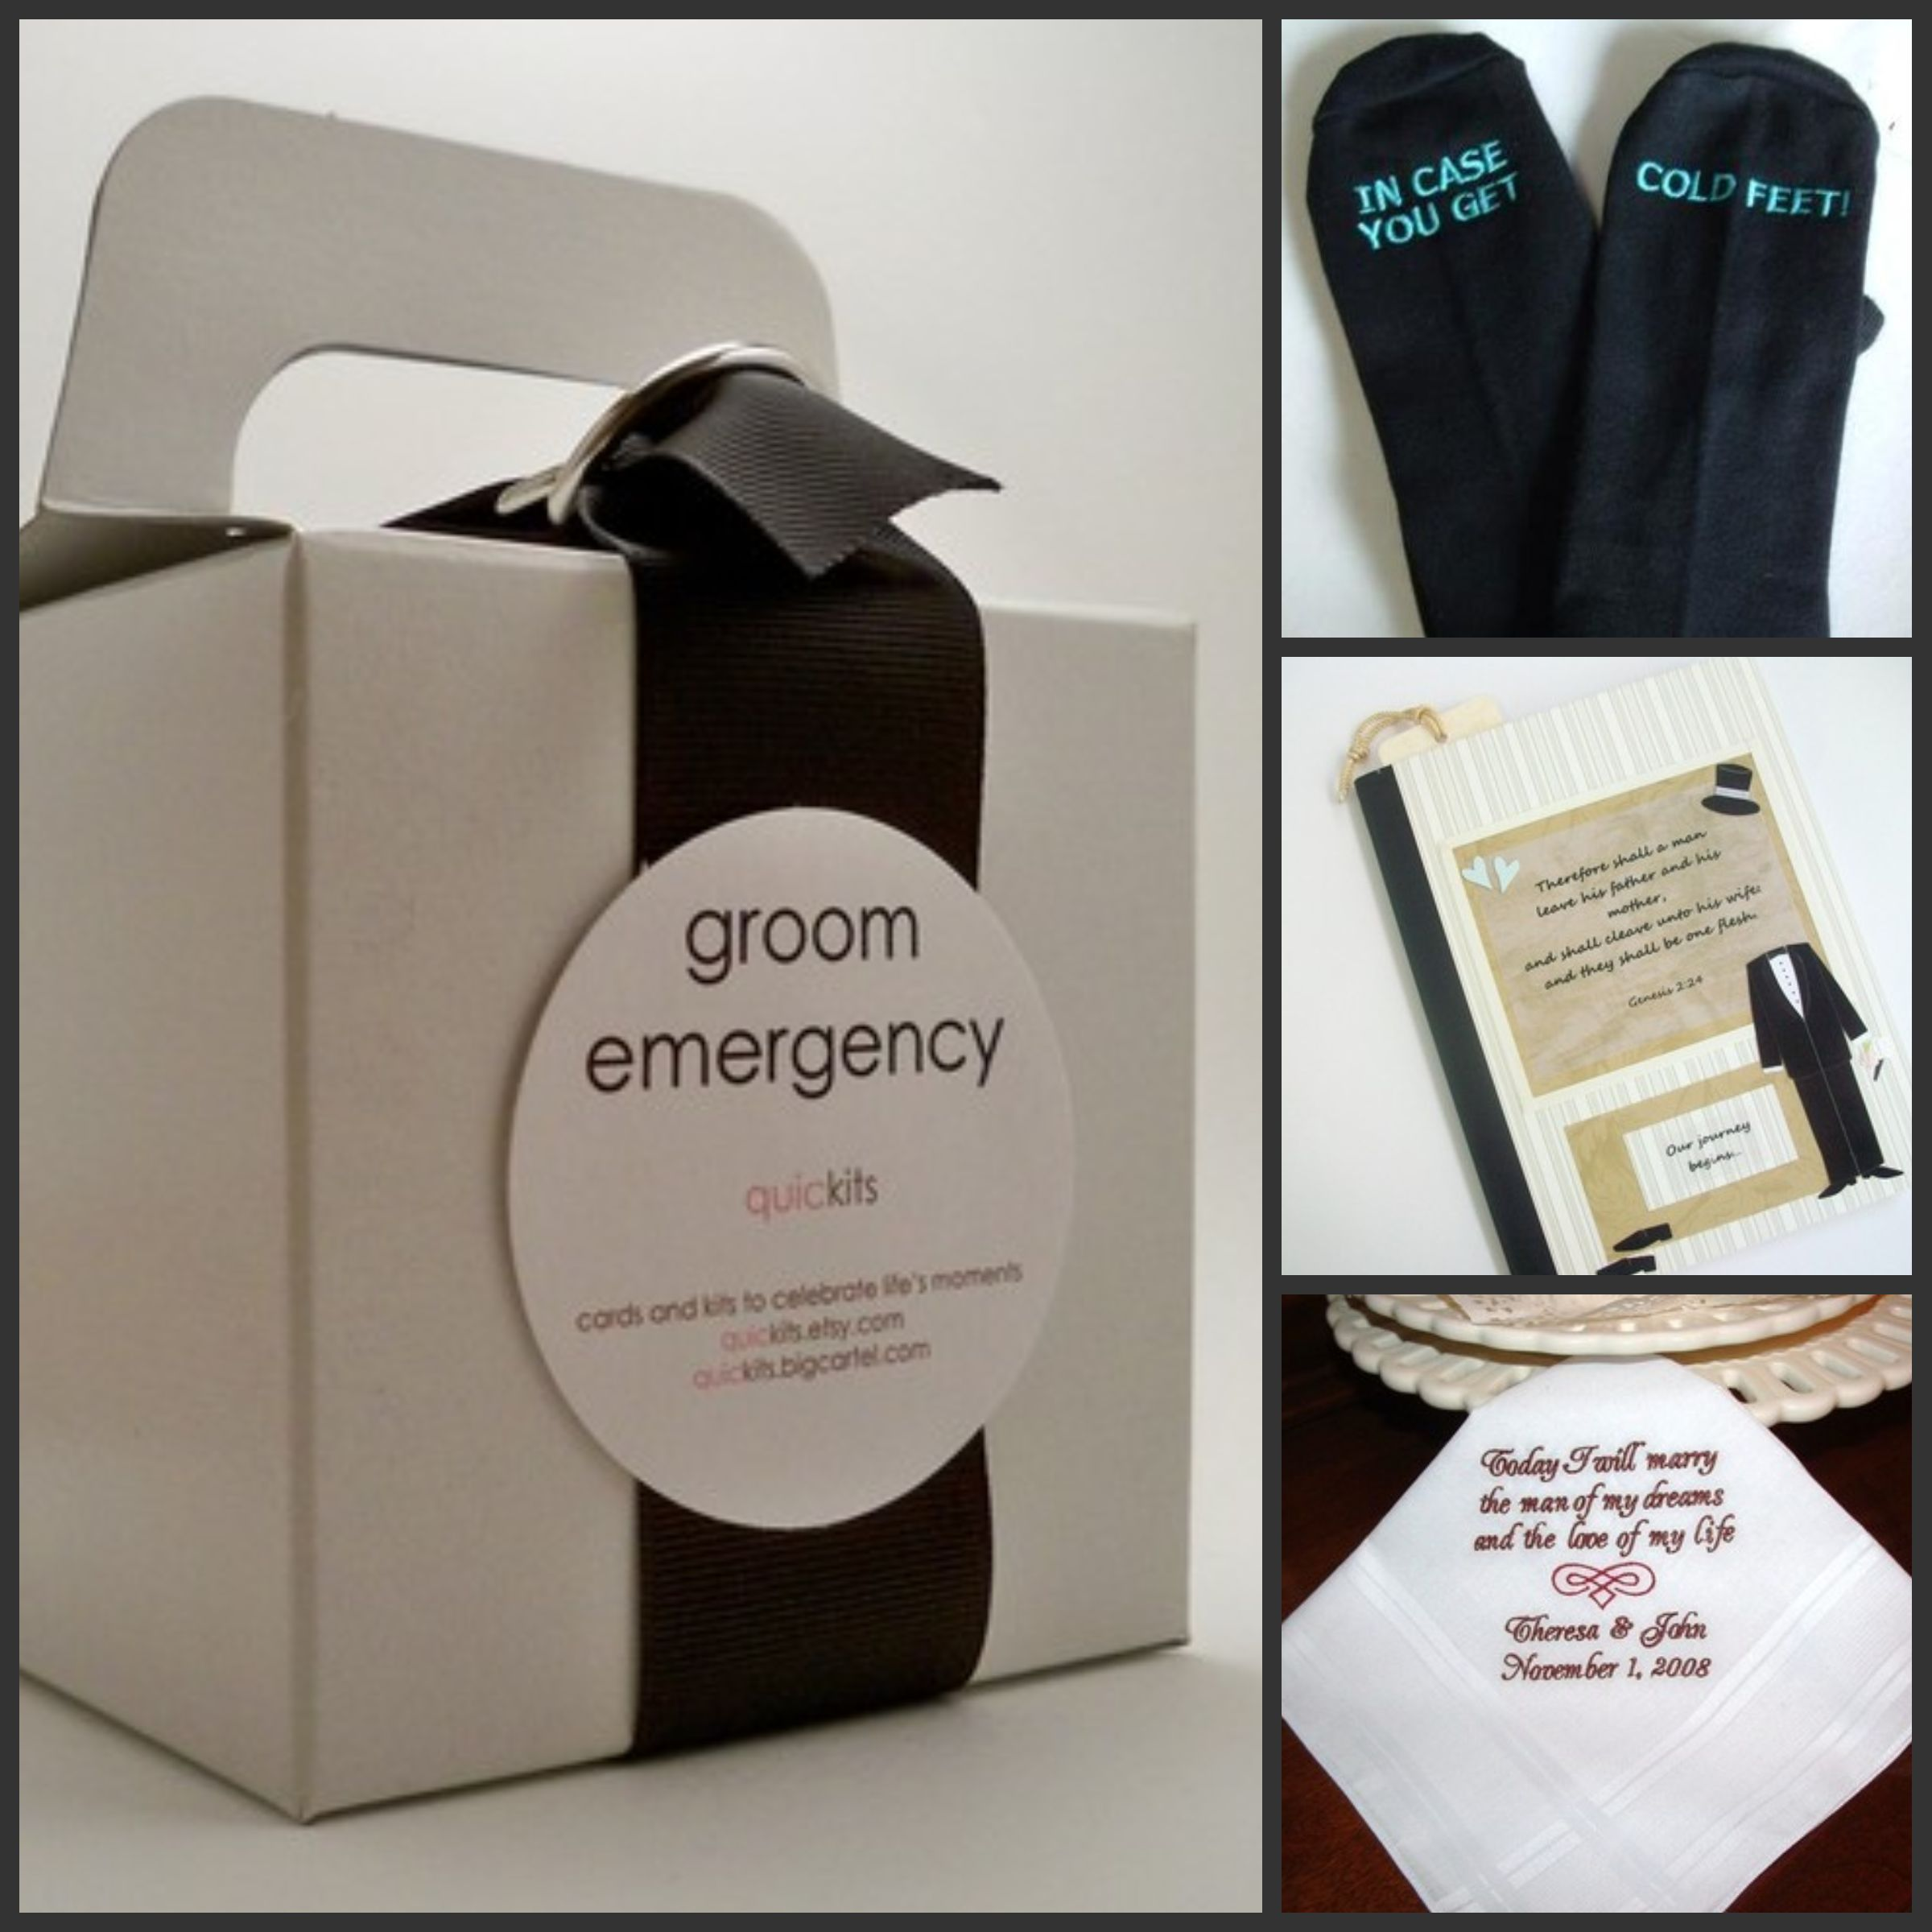 Wedding Gift For Her From Groom : personal gifts for your groom clockwise from left groom emergency kit ...